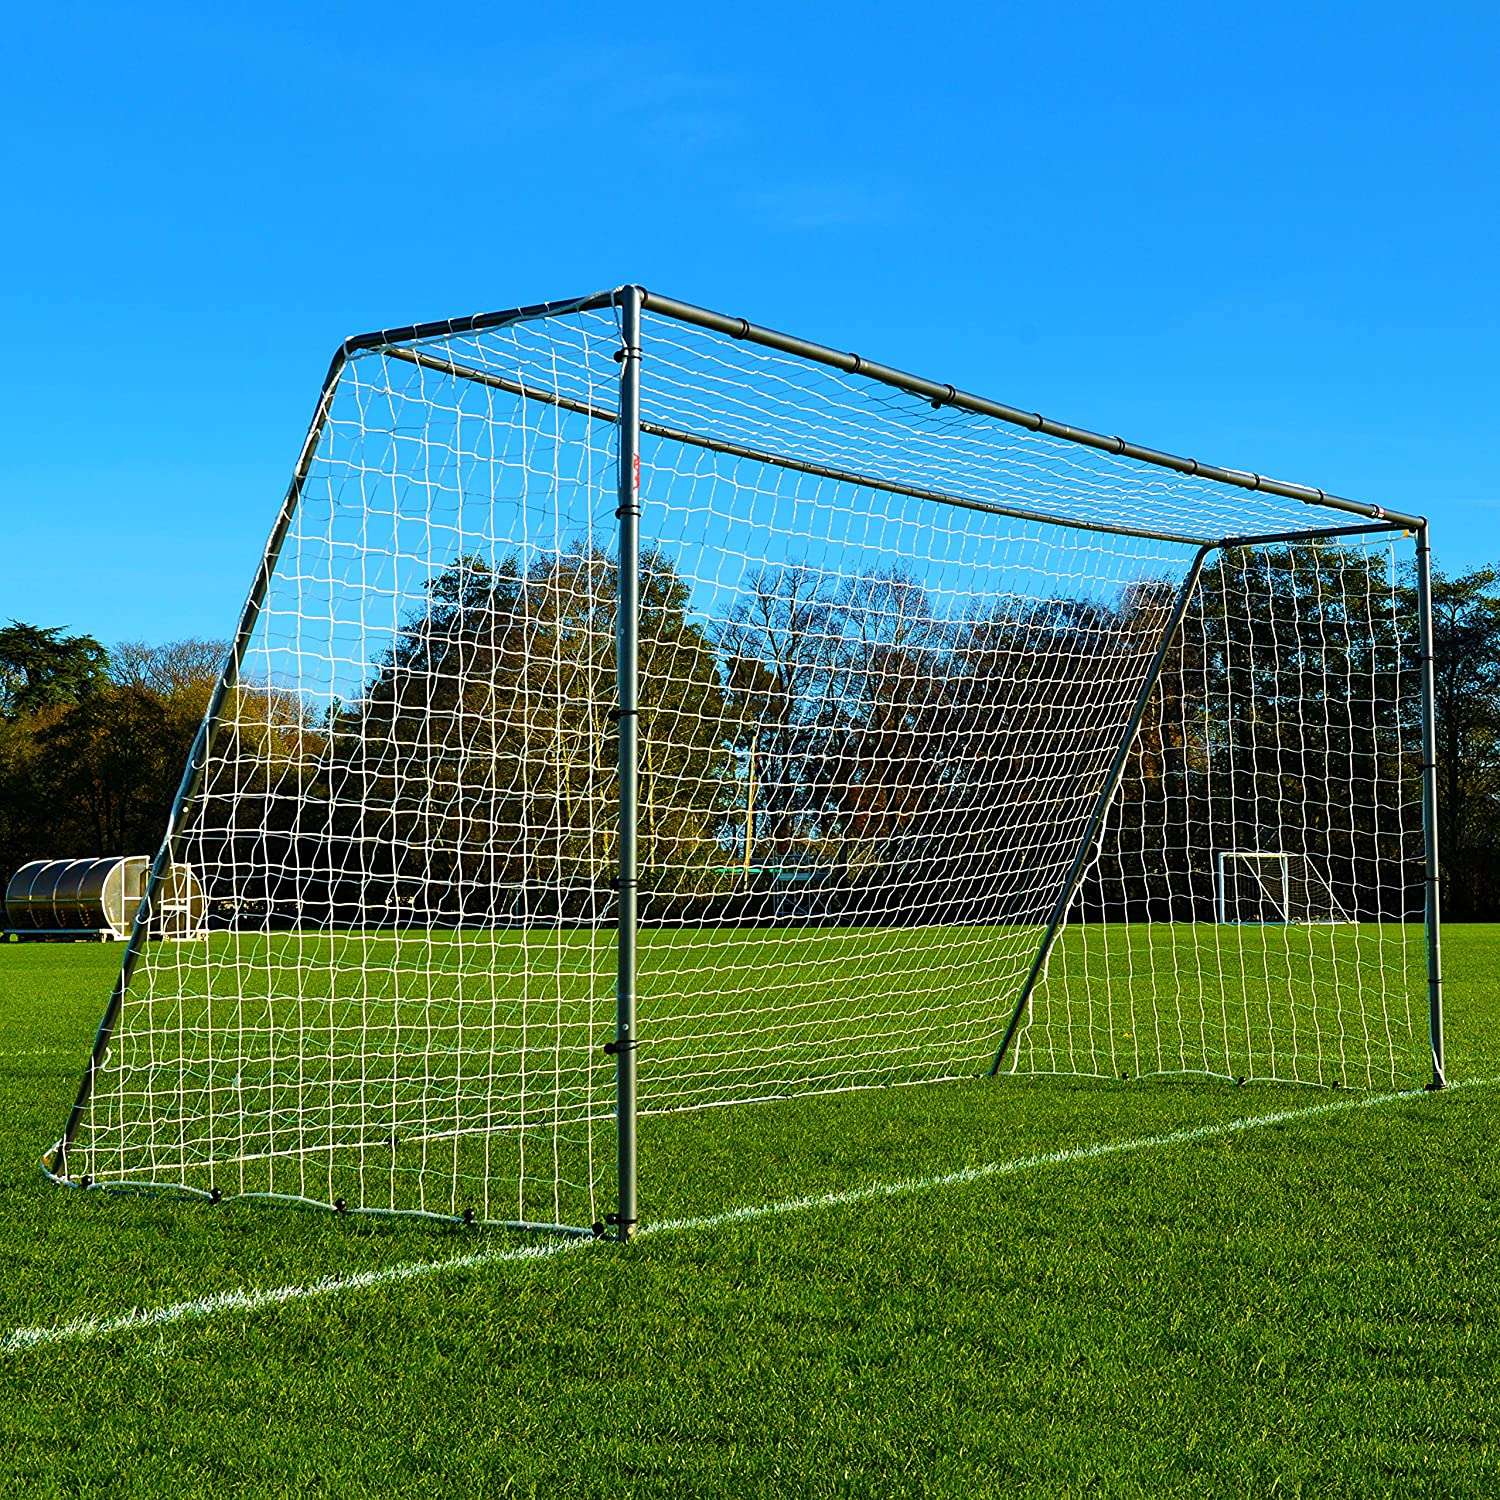 16 x 7 FORZA steel42サッカーgoal[ The StrongestスチールGoal Post & Netパッケージwith Soccer Goal Targetトレーニングシート] B018UD8M6Wwith Target Sheet + Ball